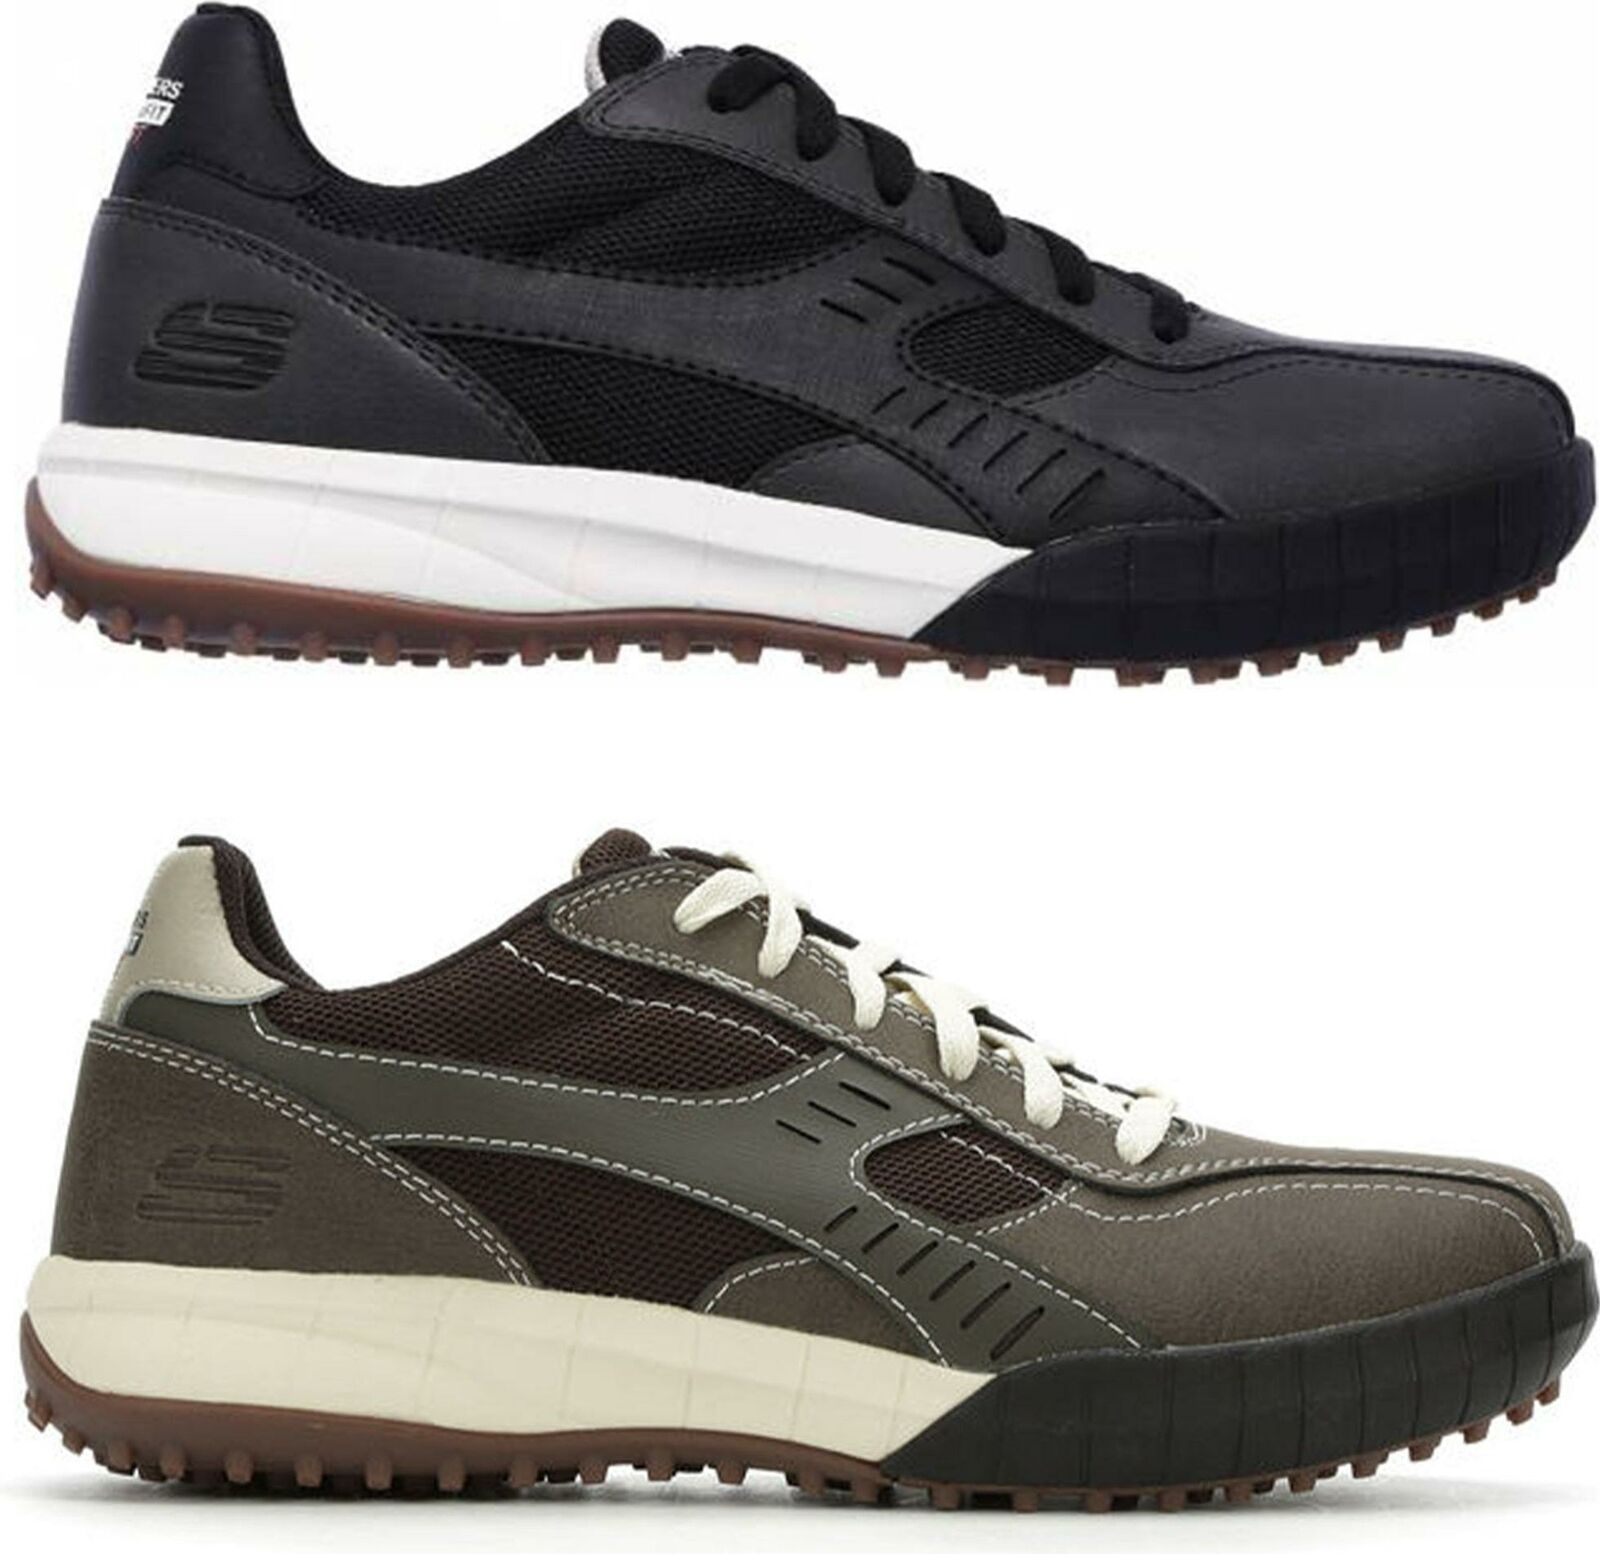 Skechers FLOATER 2.0 Mens Genuine Leather Memory Foam Sporty Lace Up Trainers